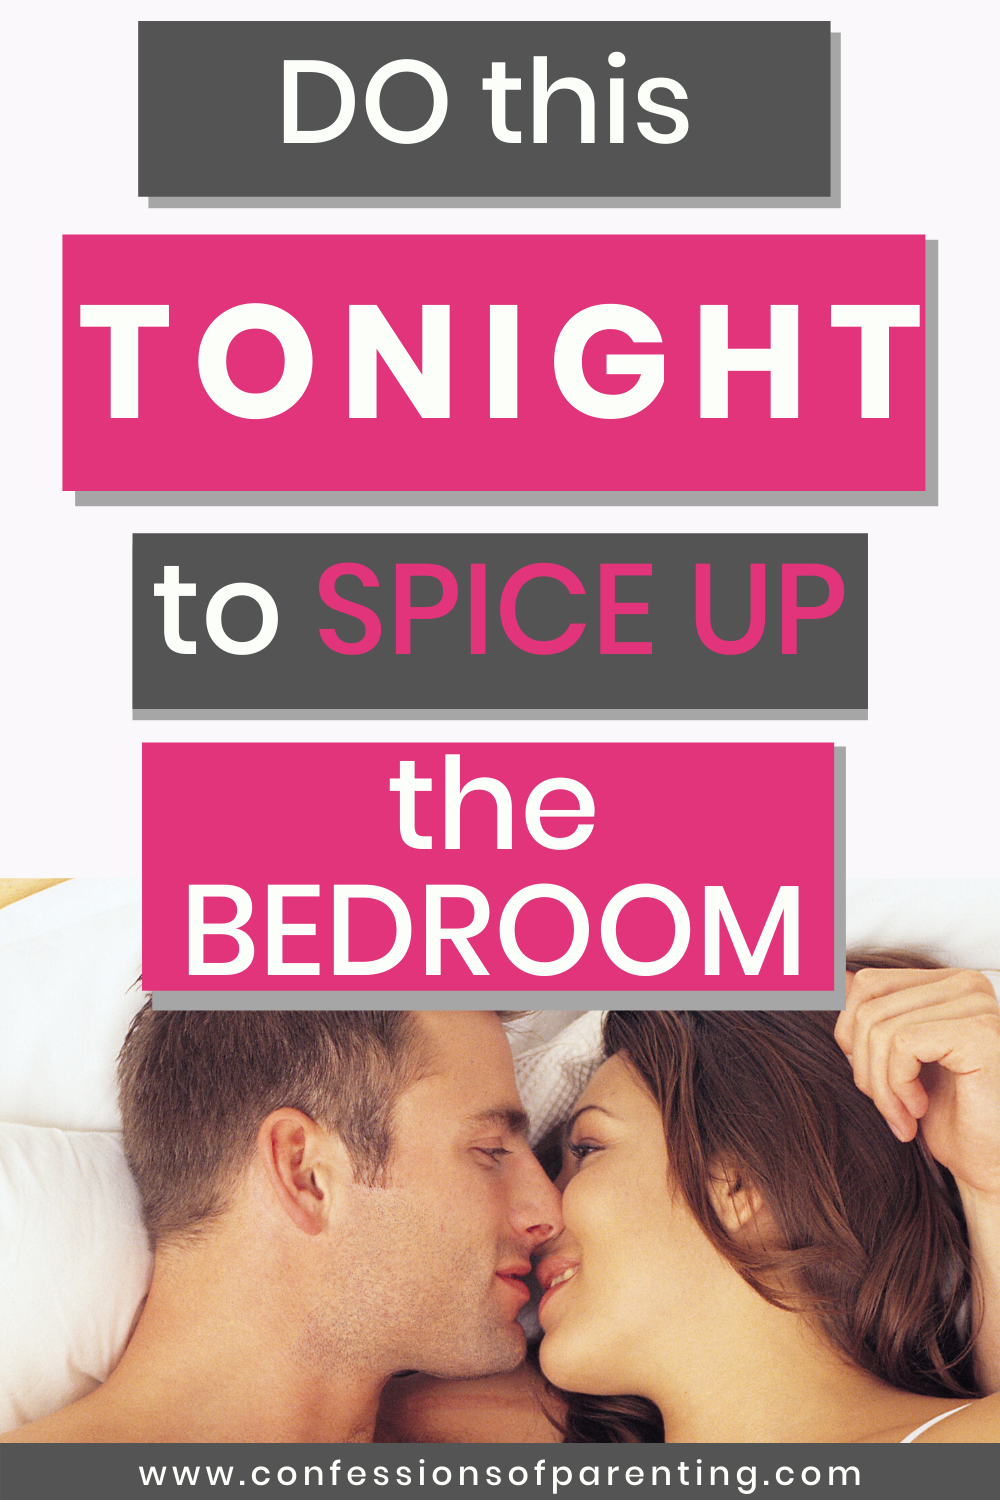 21 fun ideas to spice up the bedroom that work in 2020